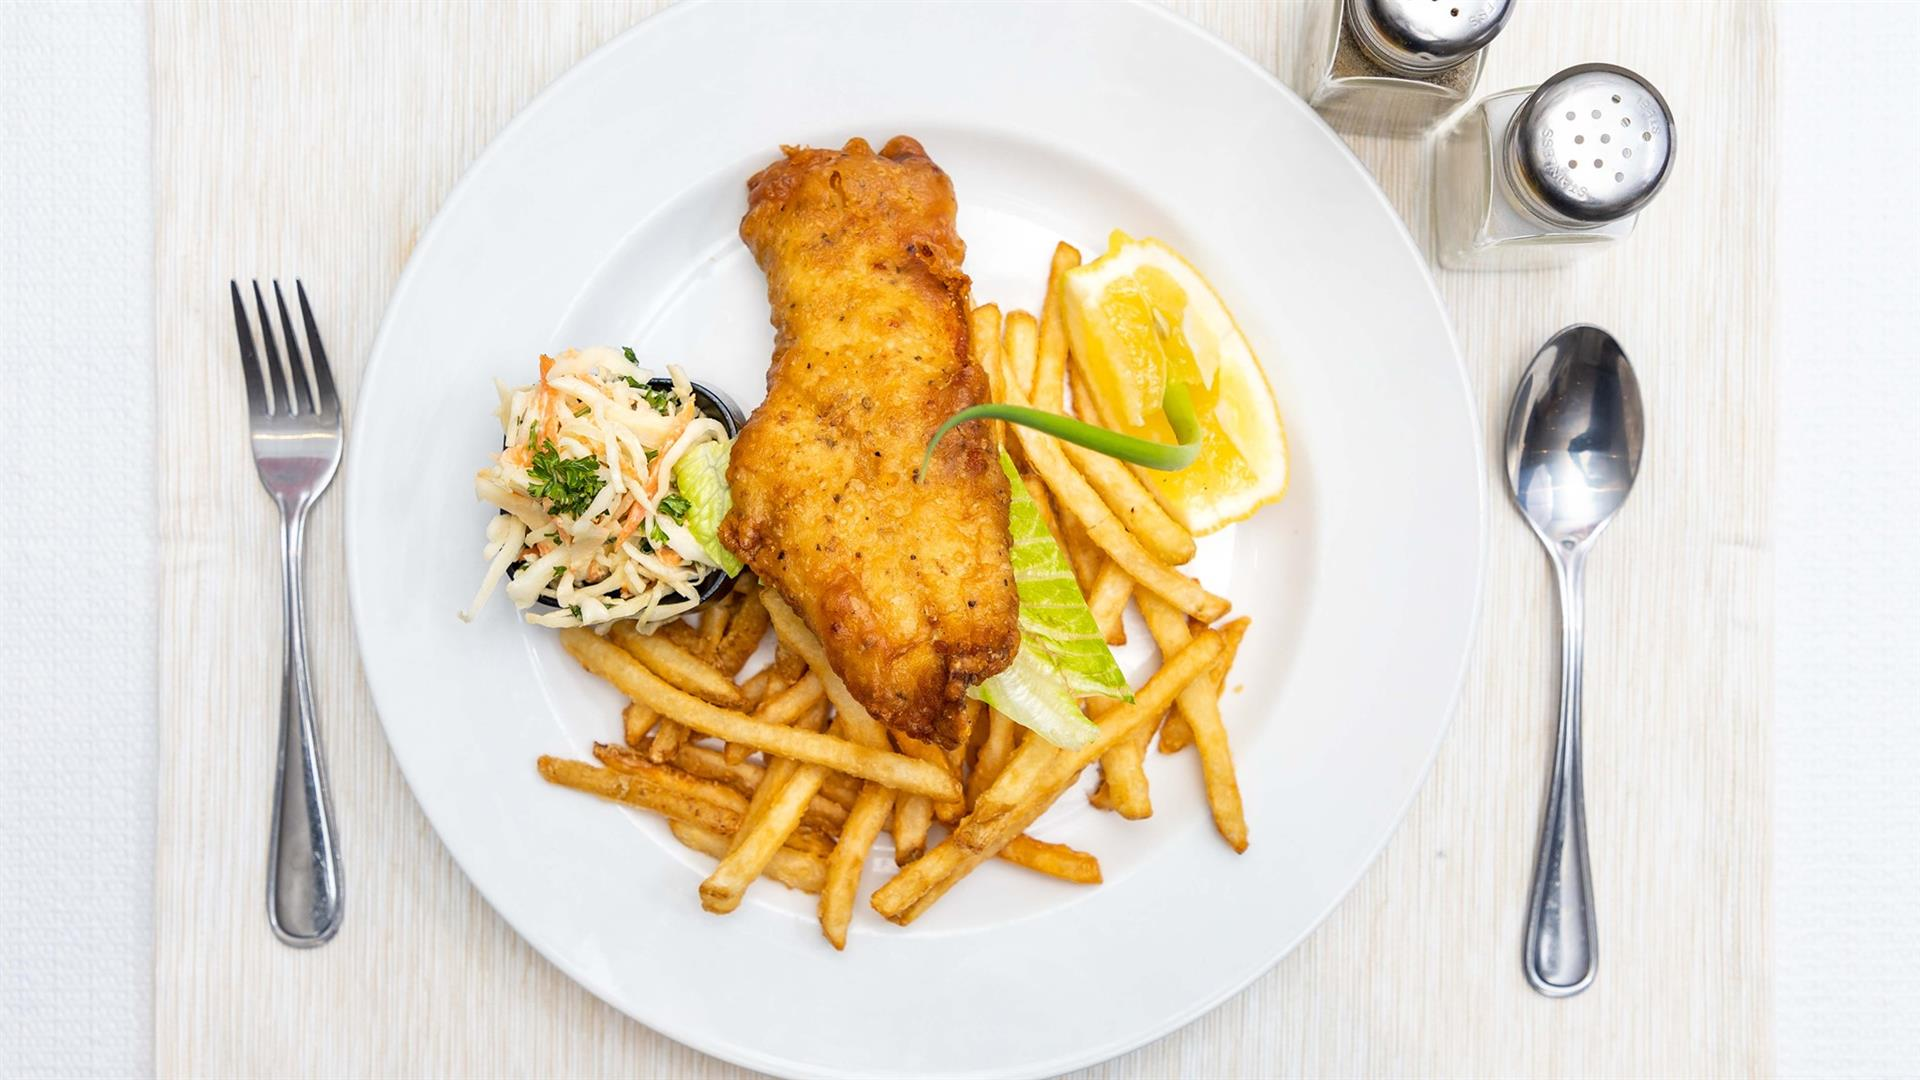 Fish and Chips served with coleslaw and tartar sauce